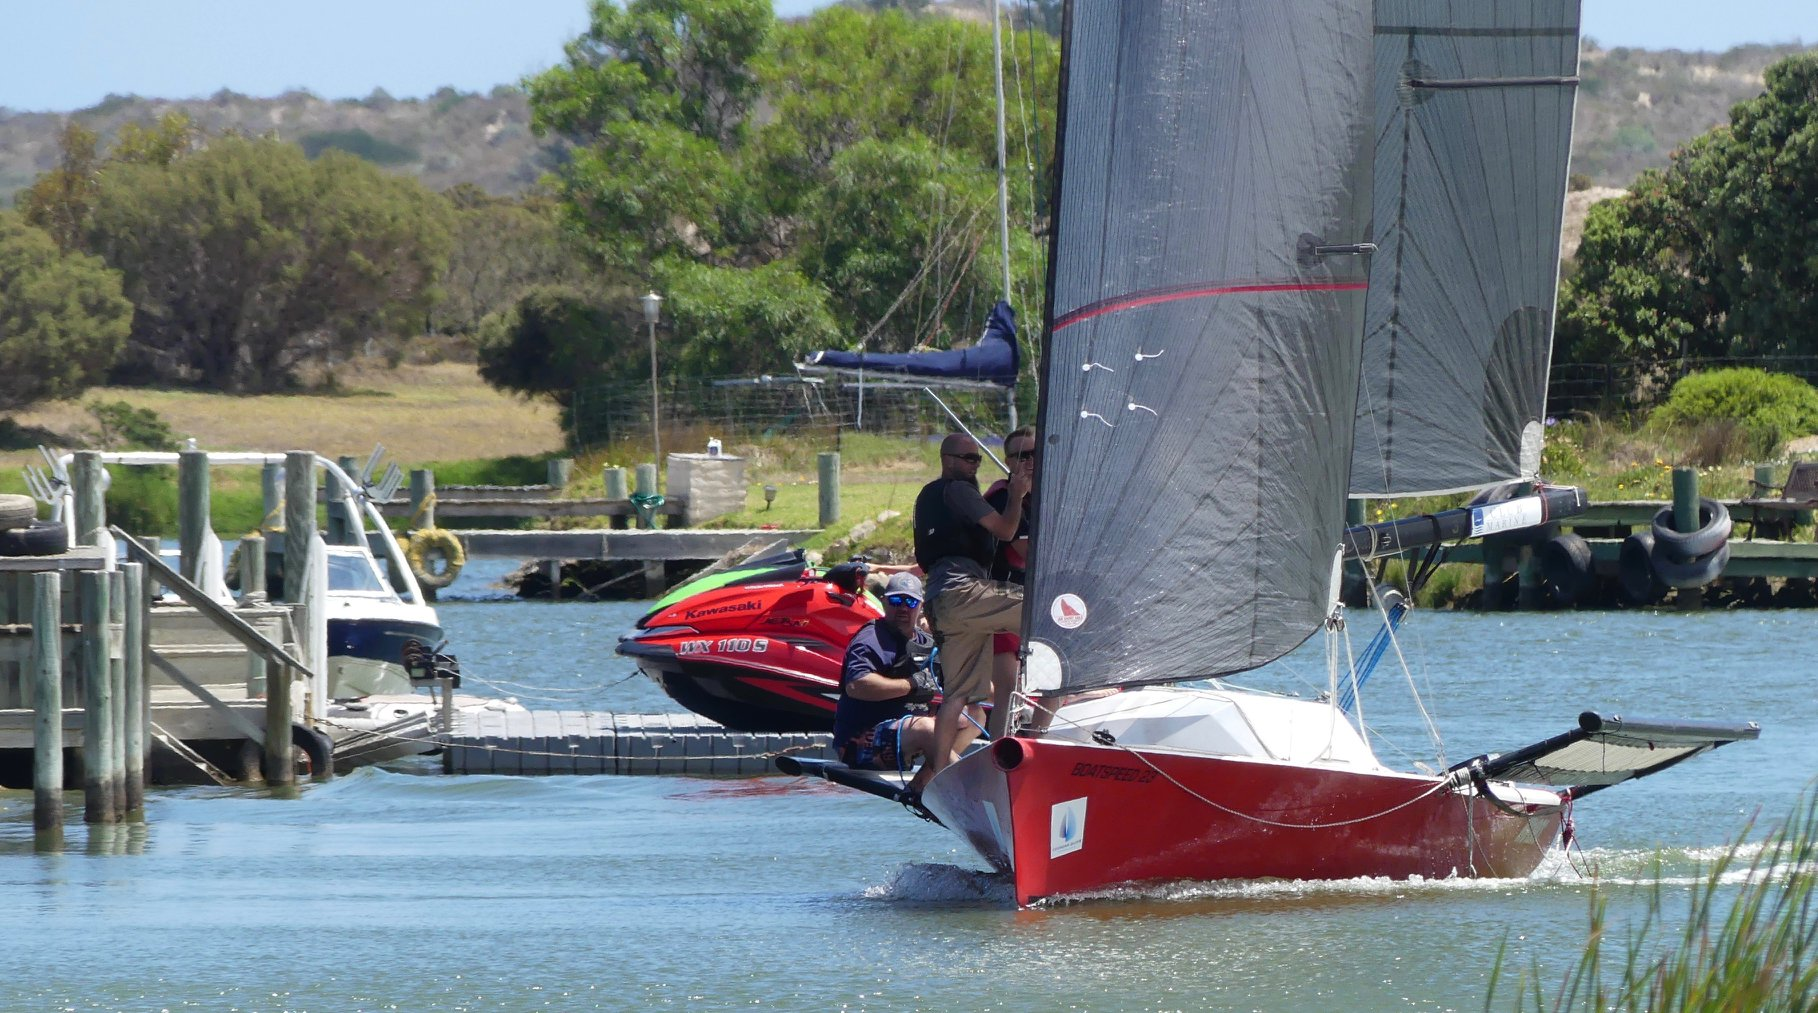 Marina Challenge sets the scene for exciting regatta week